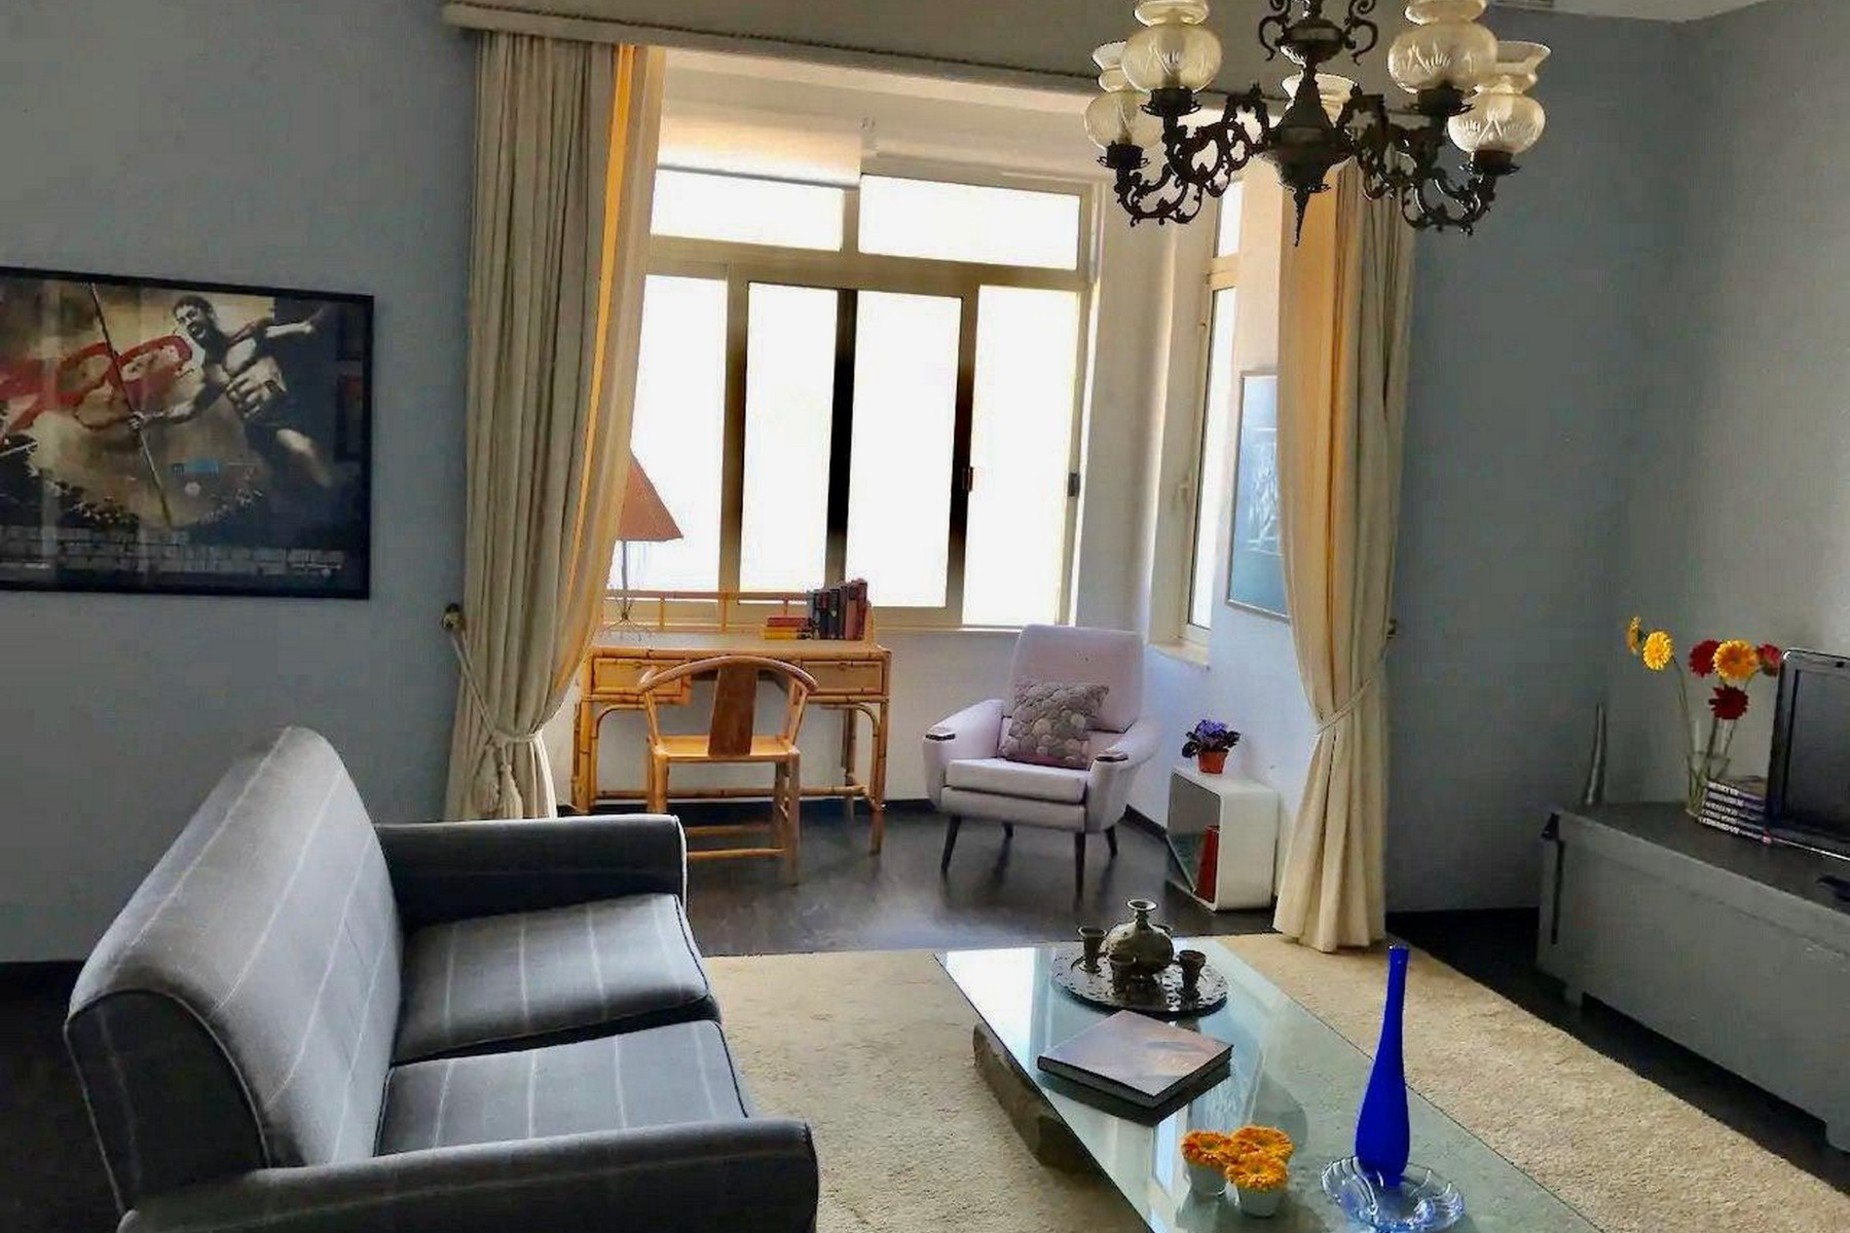 4 bed Apartment For Rent in Sliema, Sliema - thumb 19